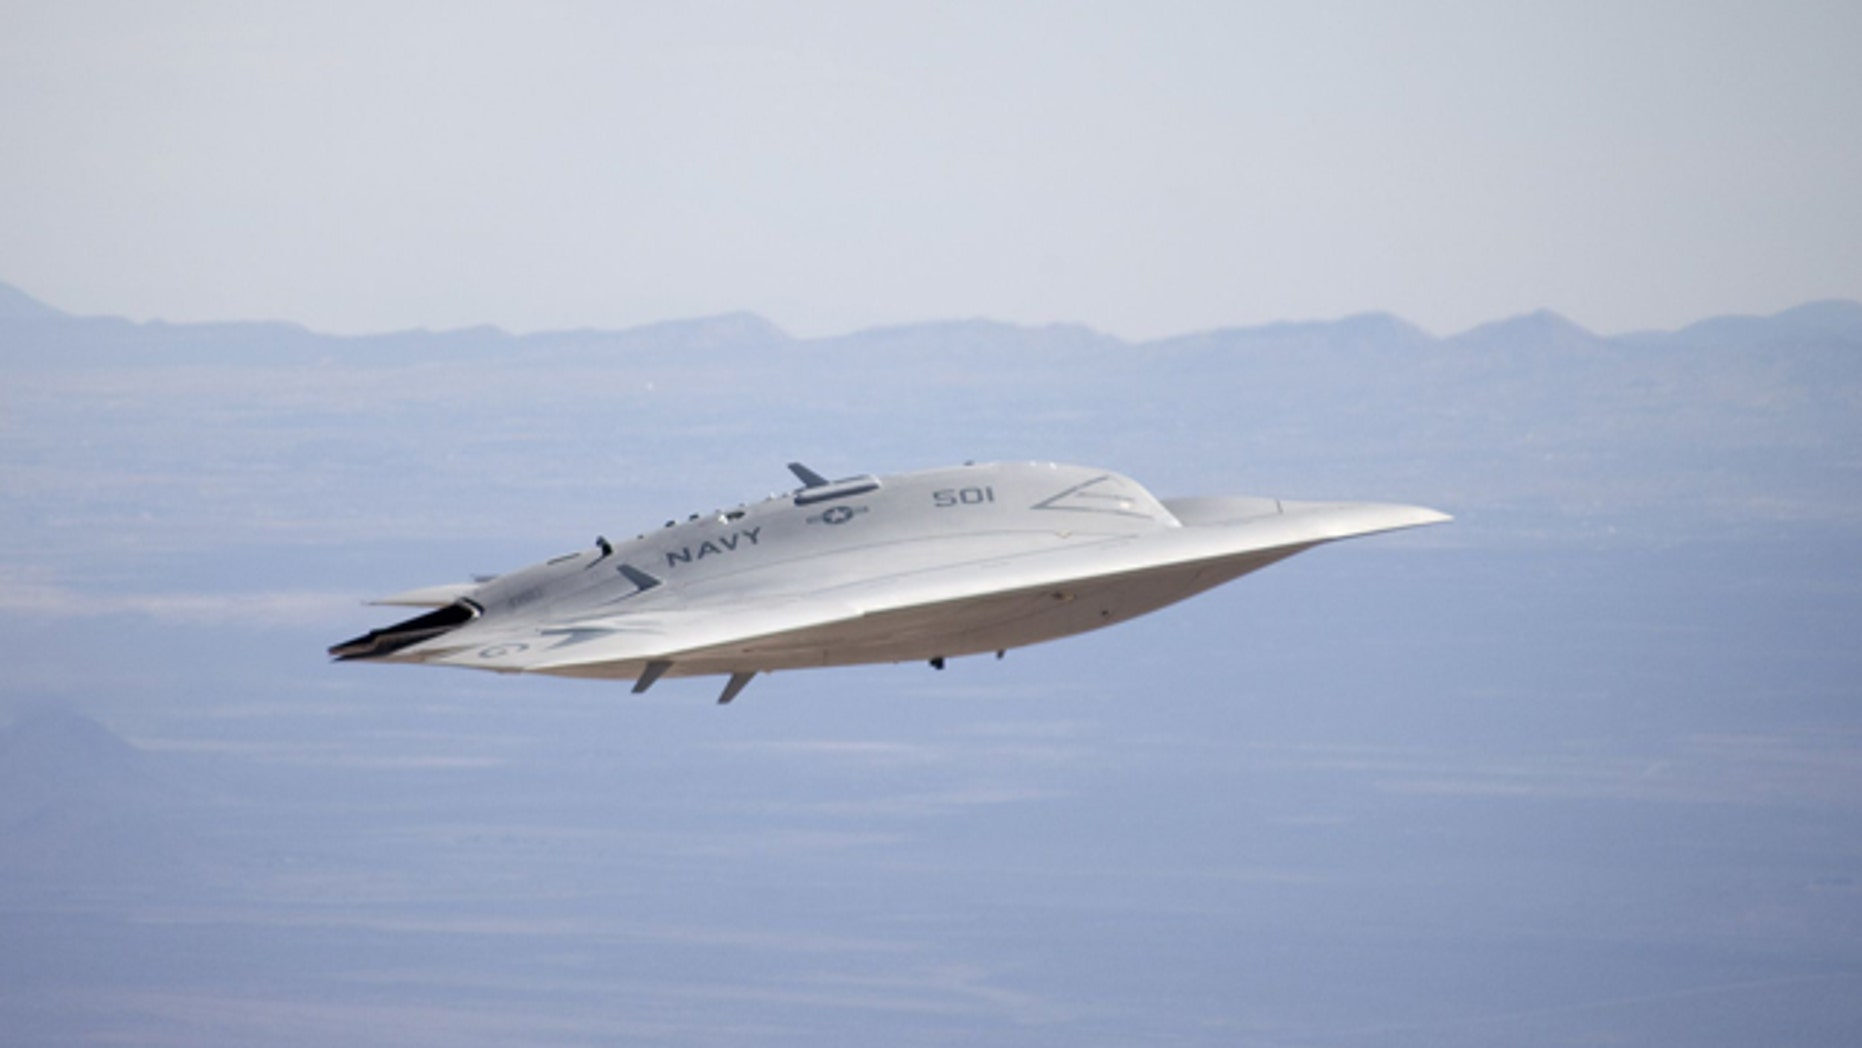 Developed by Northrop Grumman, the X-47B is a tailless, strike fighter-sized unmanned aircraft designed to take off from and land on moving aircraft carriers at sea.